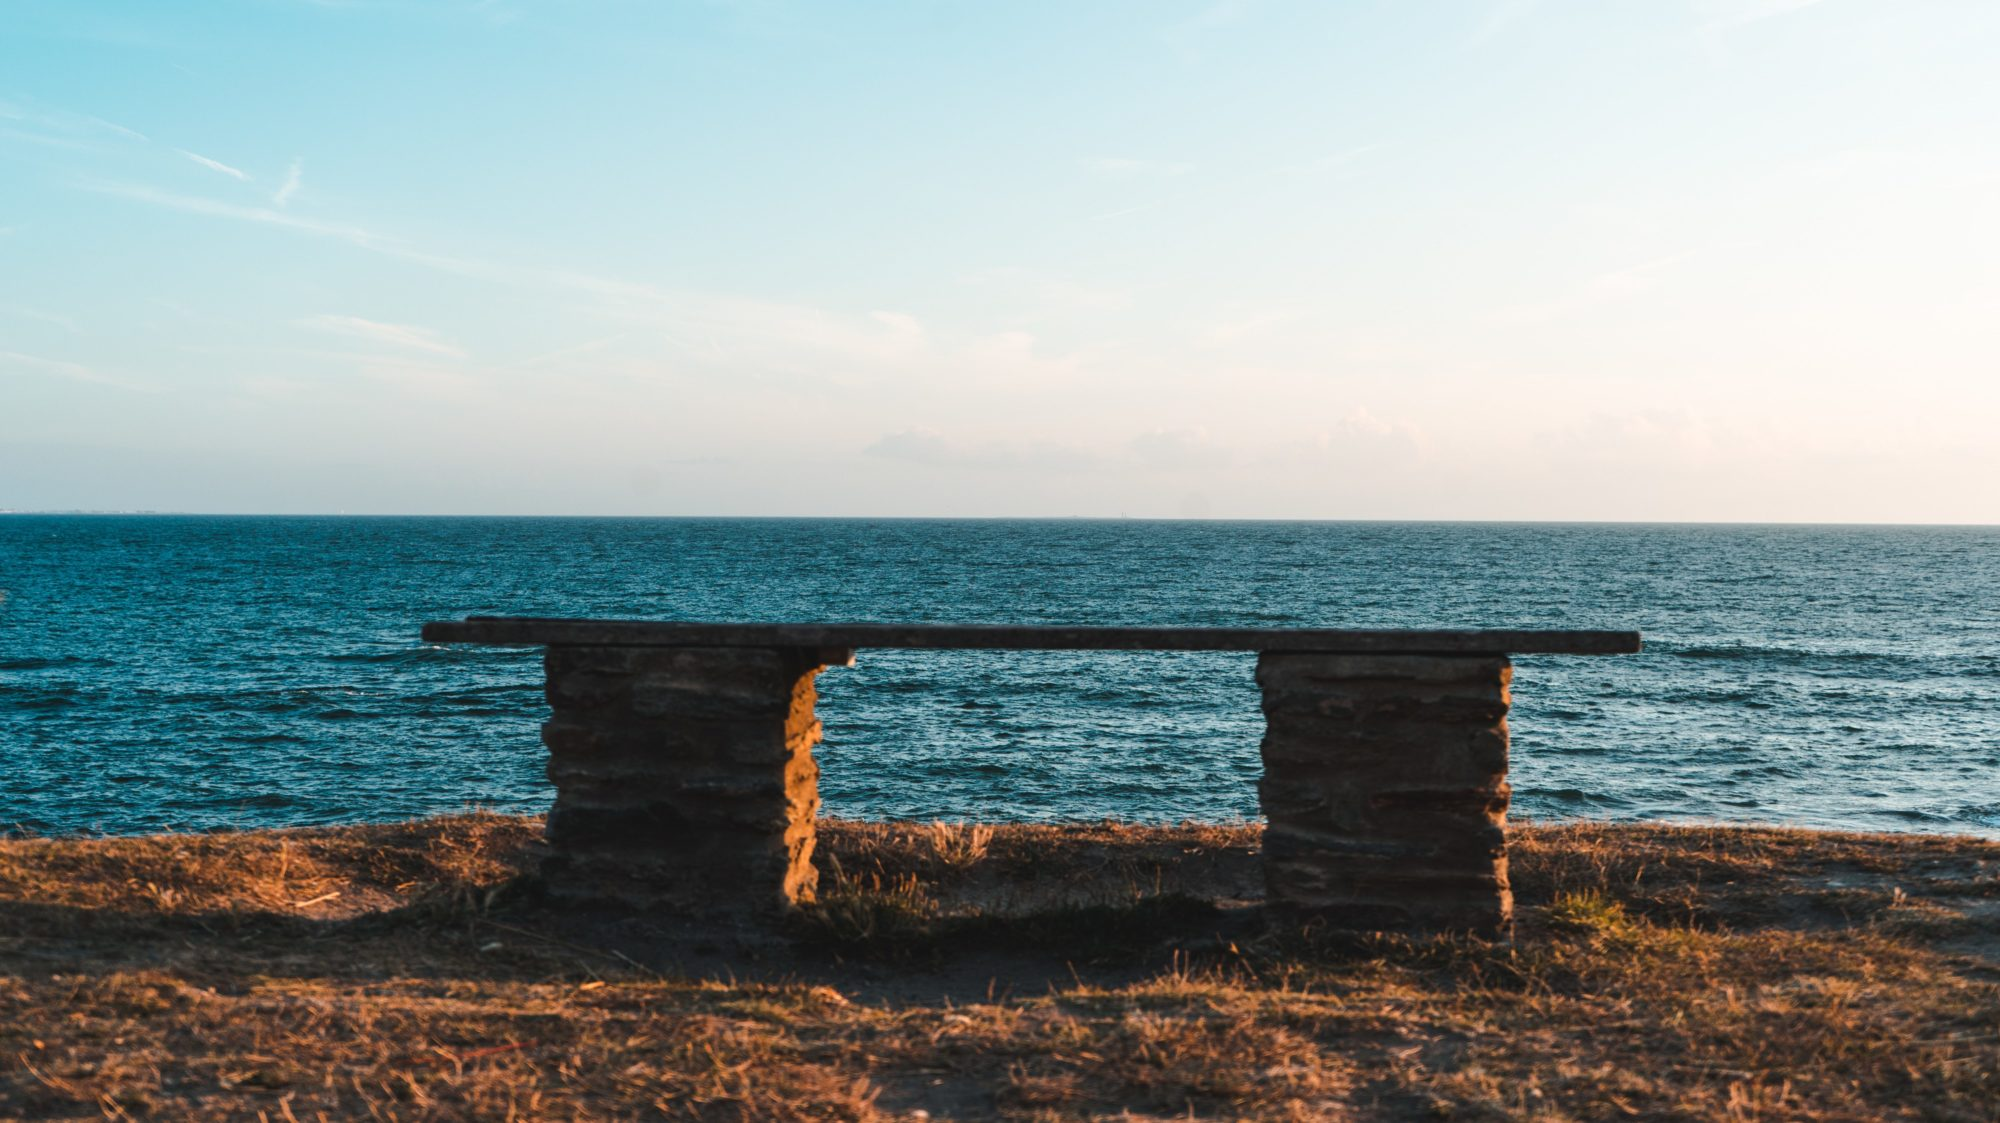 A bench looking out over the sea